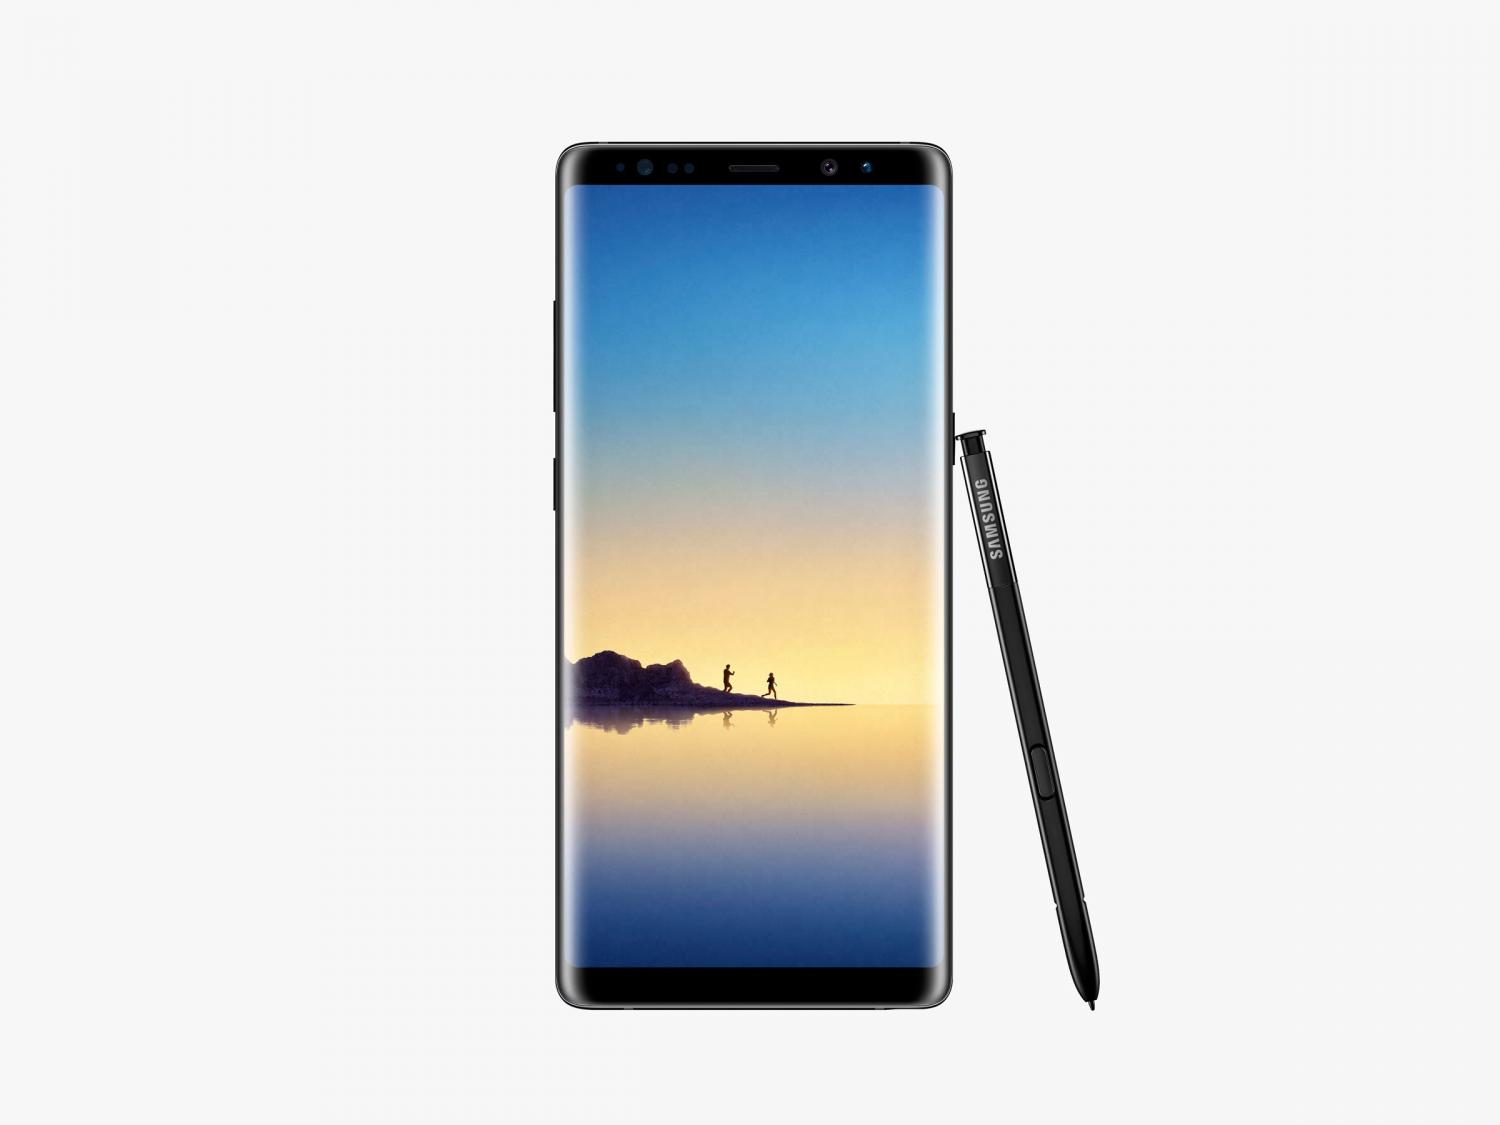 Samsung's newest Galaxy Note 8 now available for pre-order